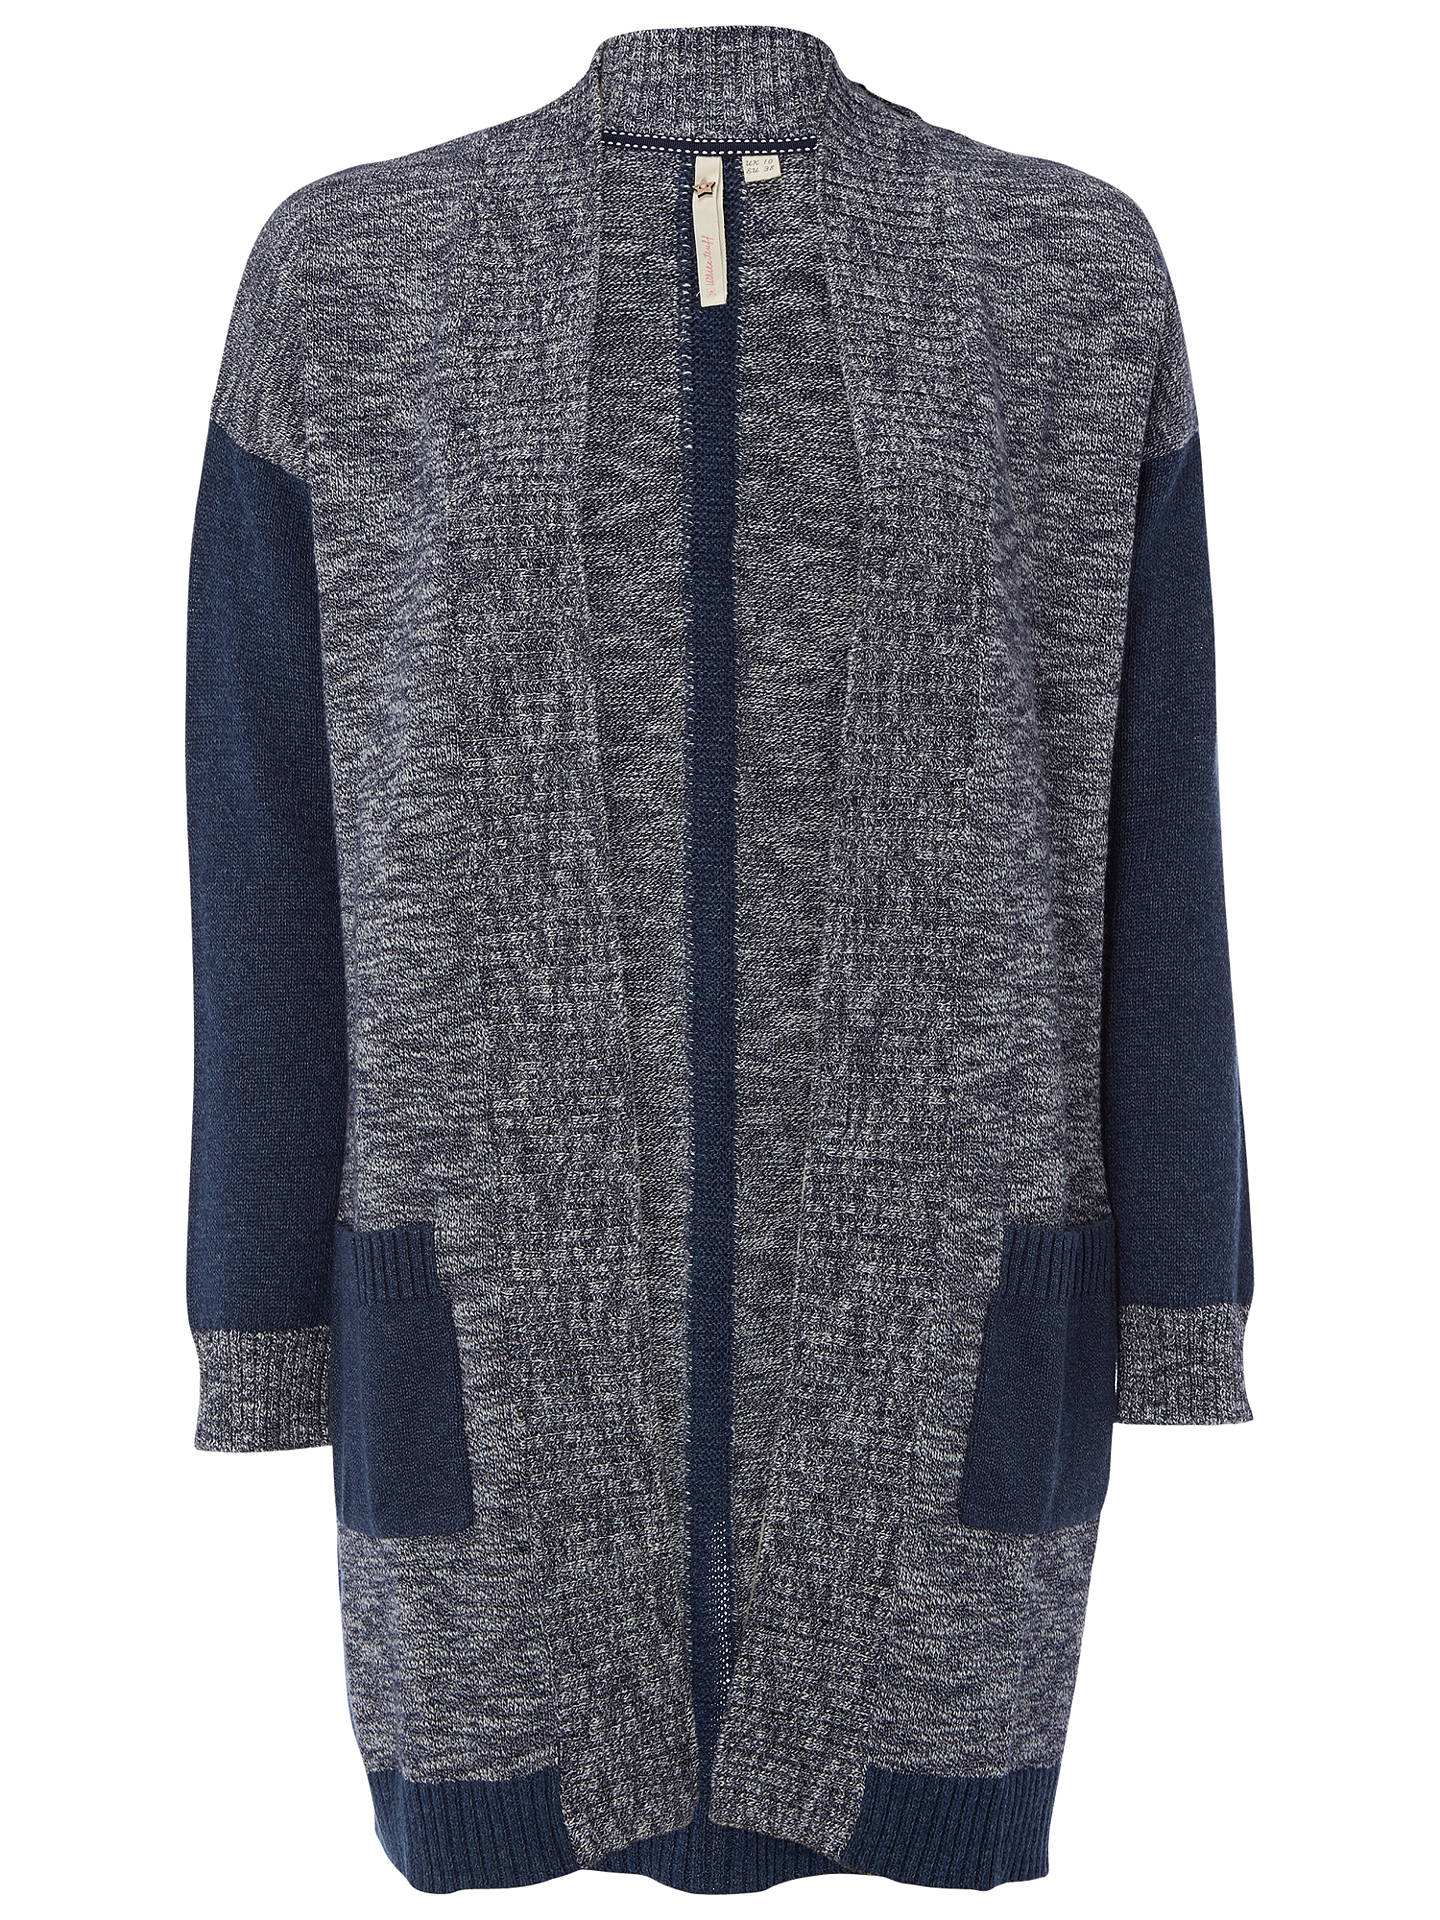 BuyWhite Stuff Ballad Cardigan, Navy, 6 Online at johnlewis.com